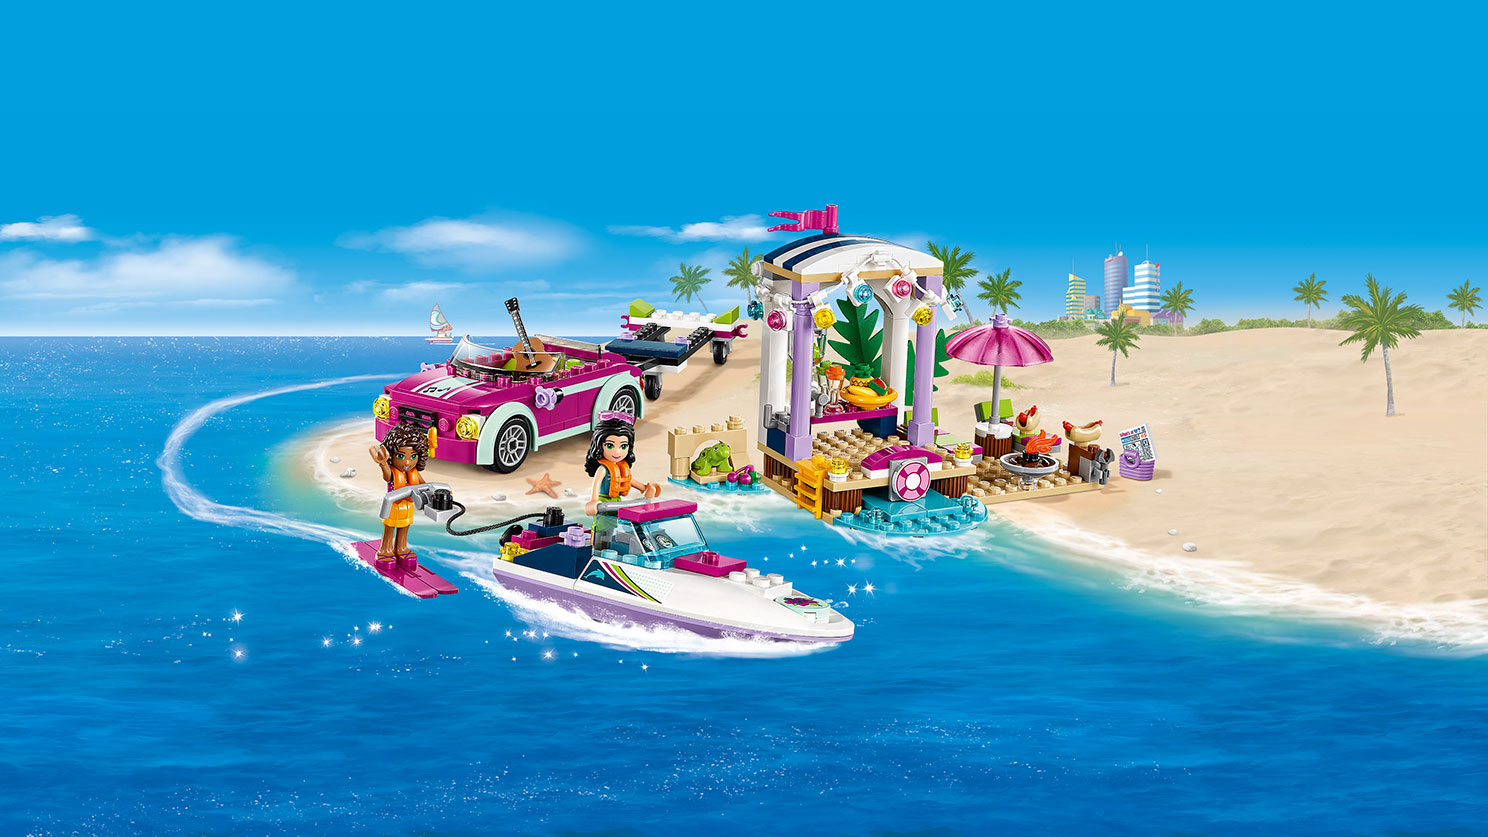 LEGO Friends - 41316 Andrea's Speedboat Transporter - Andrea is on the water ski at sea being towed by Emma on the Speedboat next to the beach party.